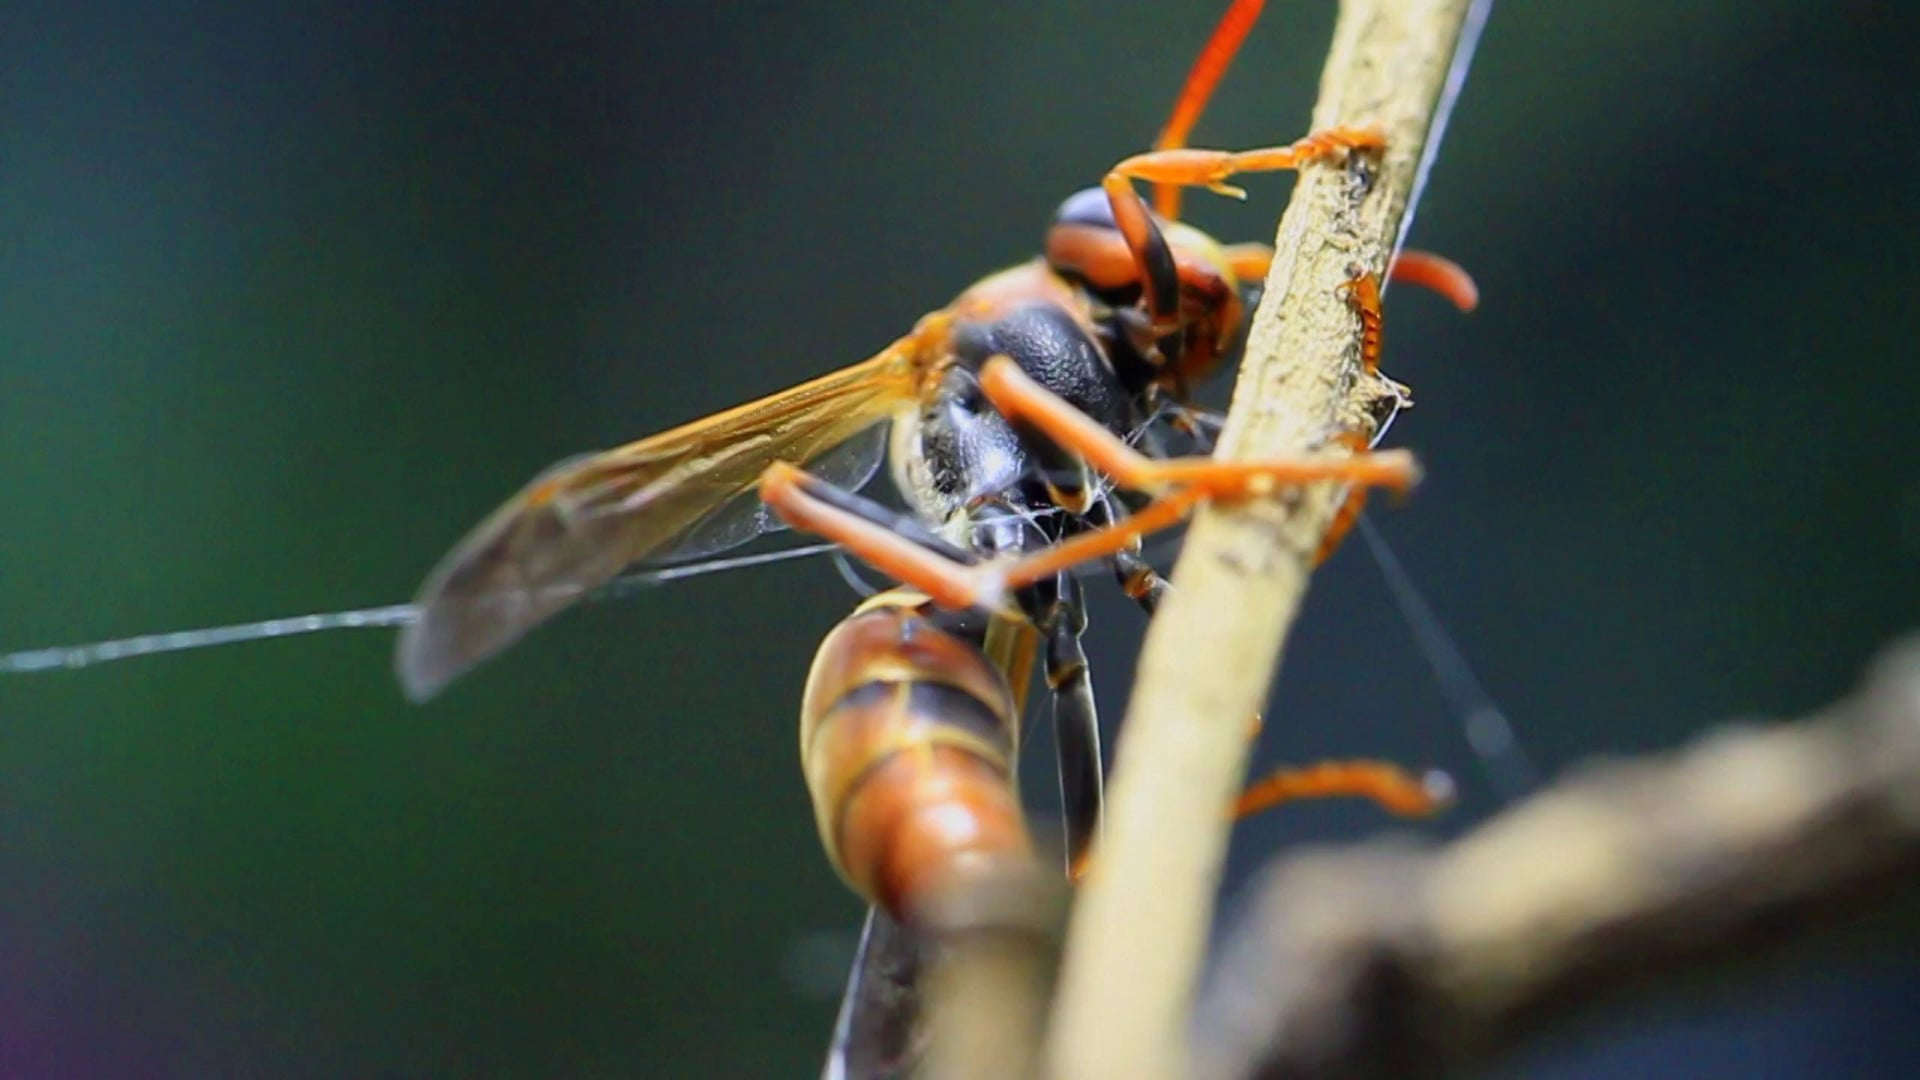 A Bug's Life - 100mm MM w/ Canon 7D